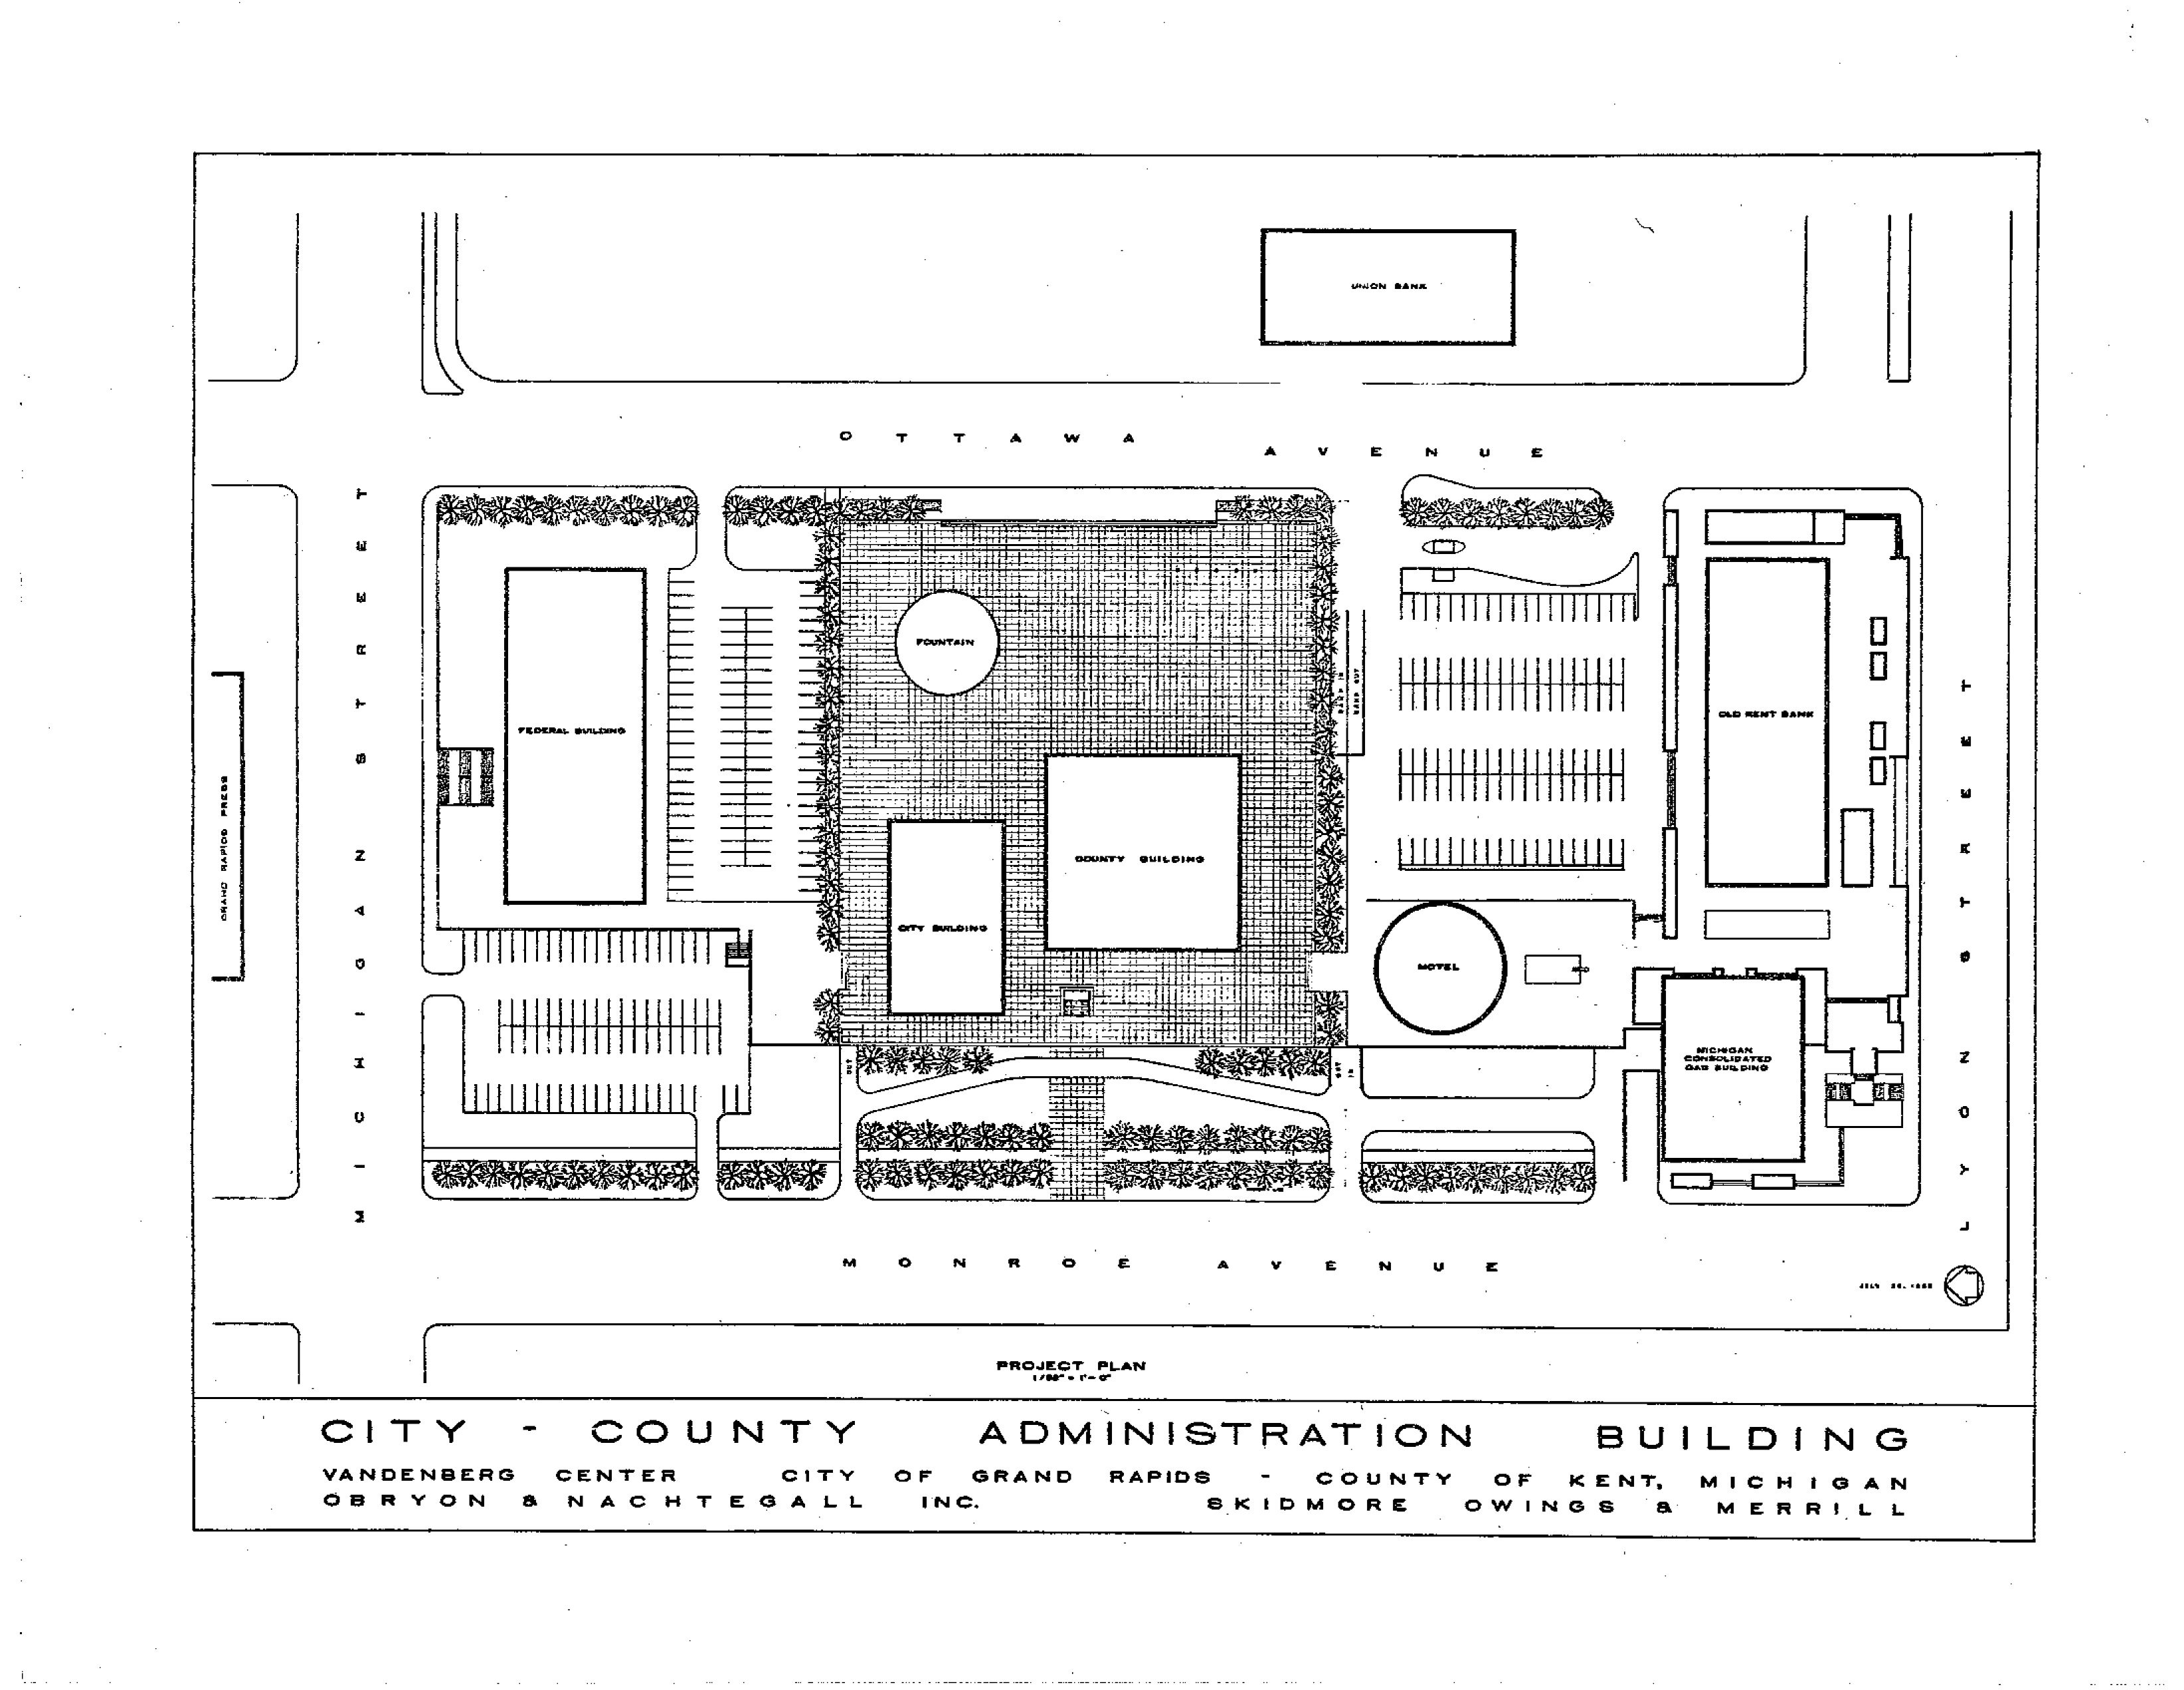 medium resolution of 1965 project plan of city county complex showing fountain feature